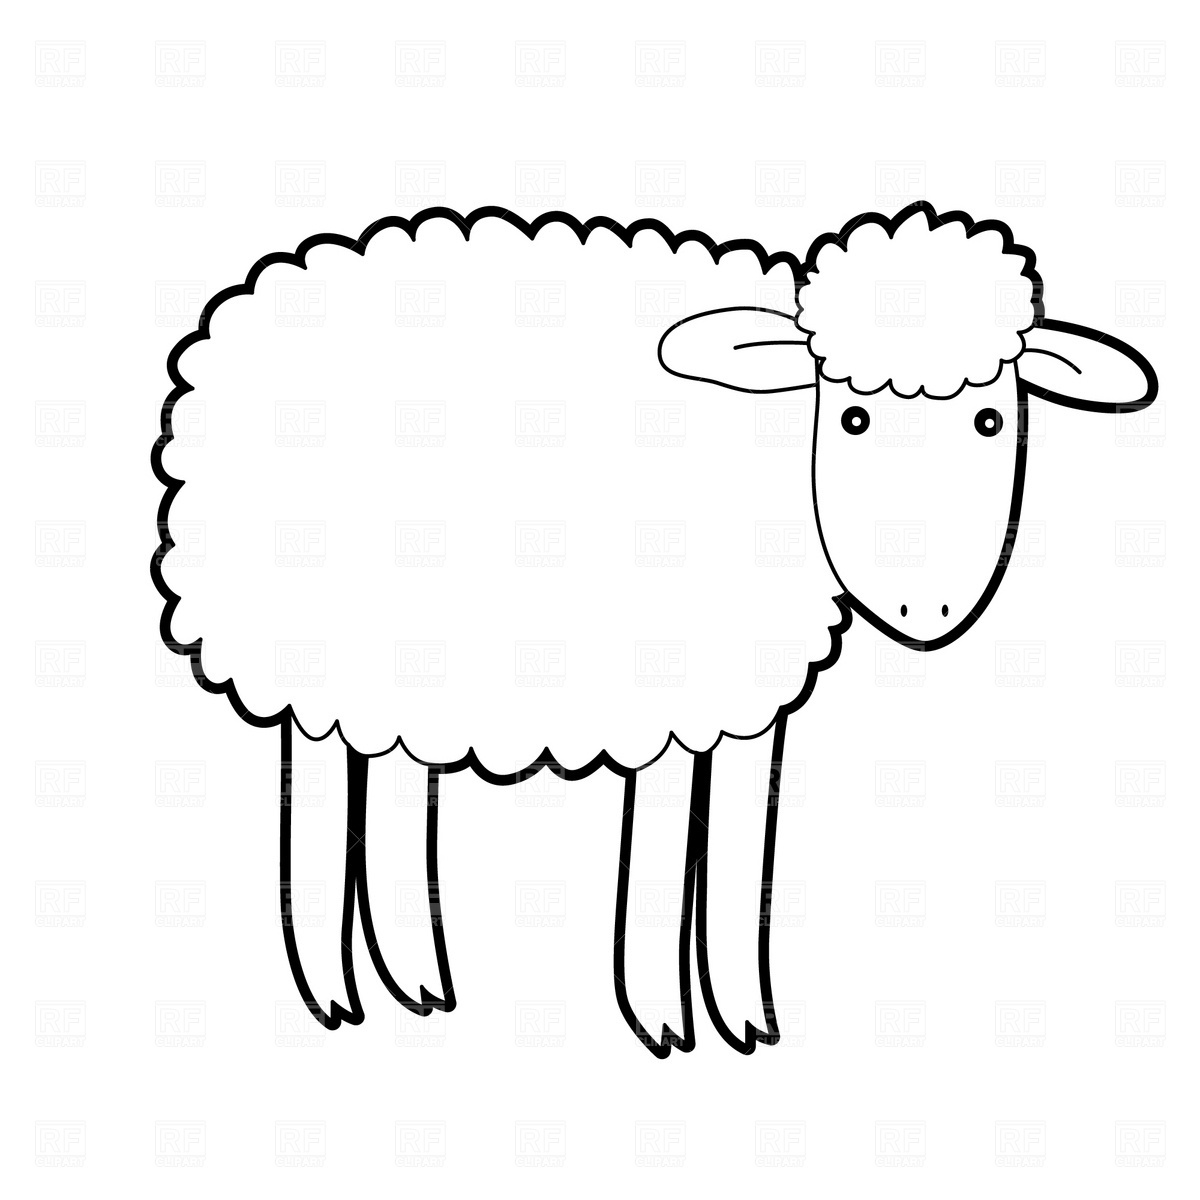 Sheep Outline | Free Download Best Sheep Outline On Clipartmag - Free Printable Pictures Of Sheep